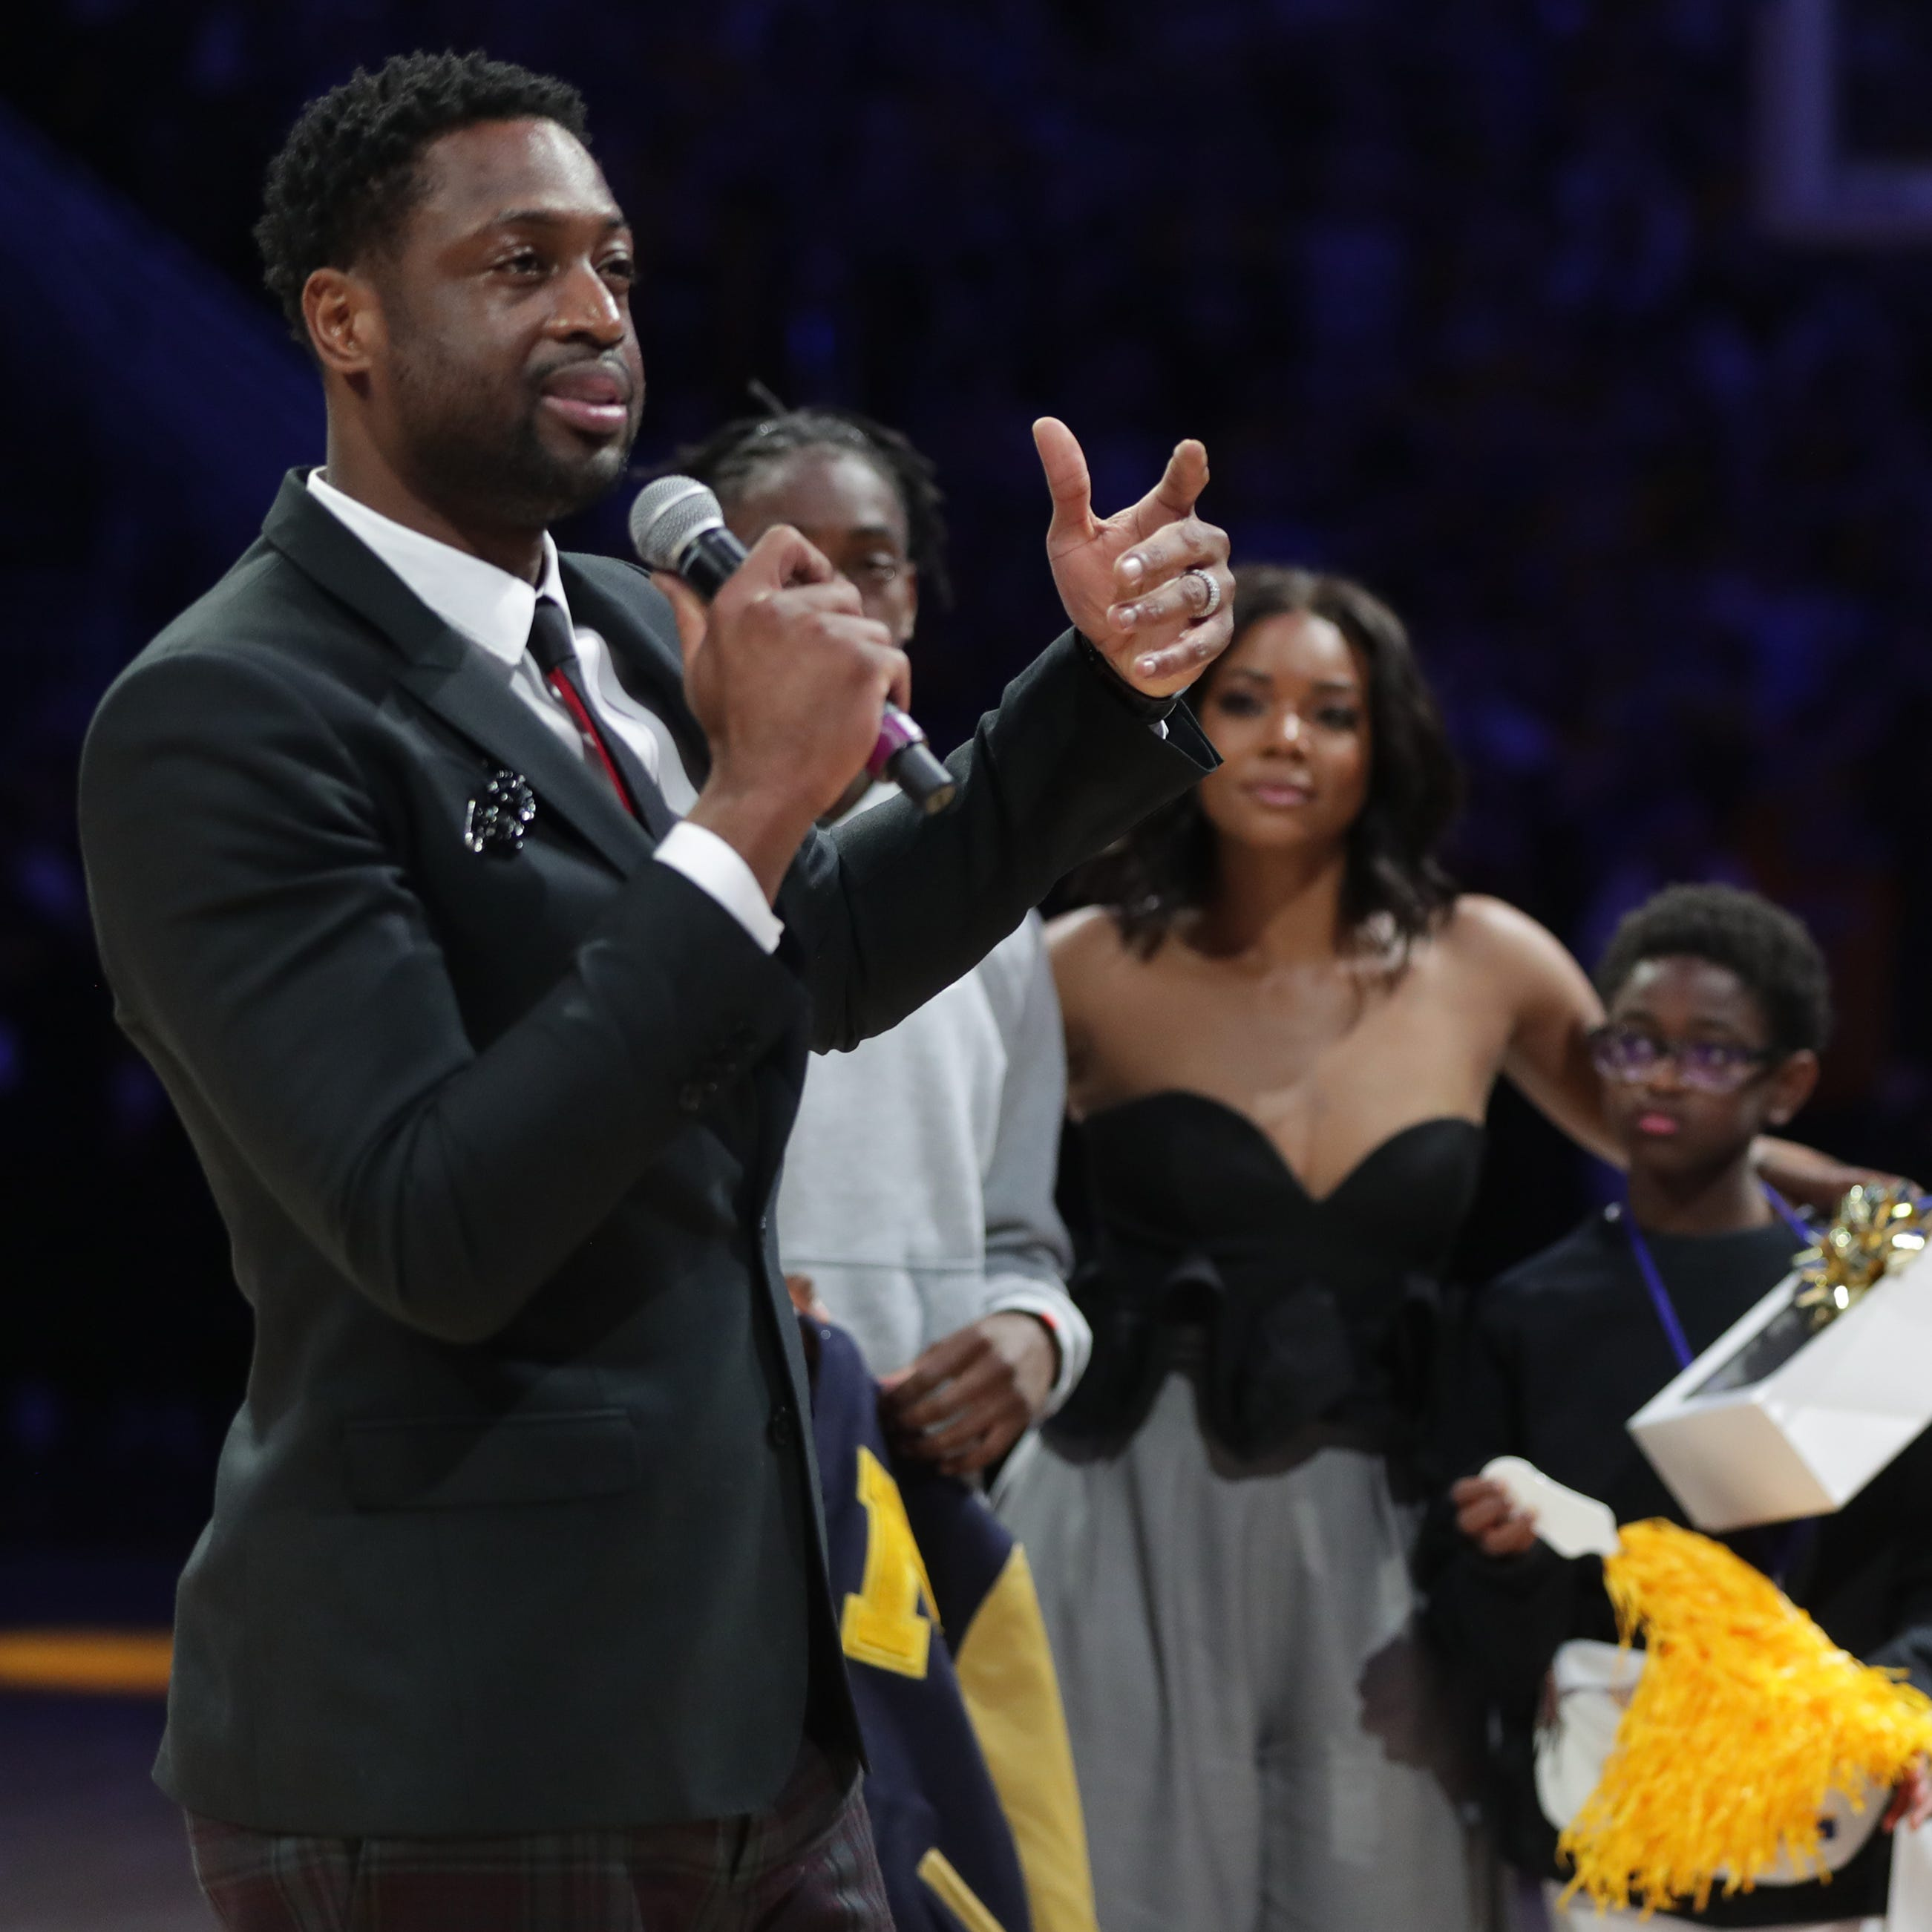 Budweiser tribute video to Dwyane Wade will make you teary-eyed as former Marquette star prepares for final games